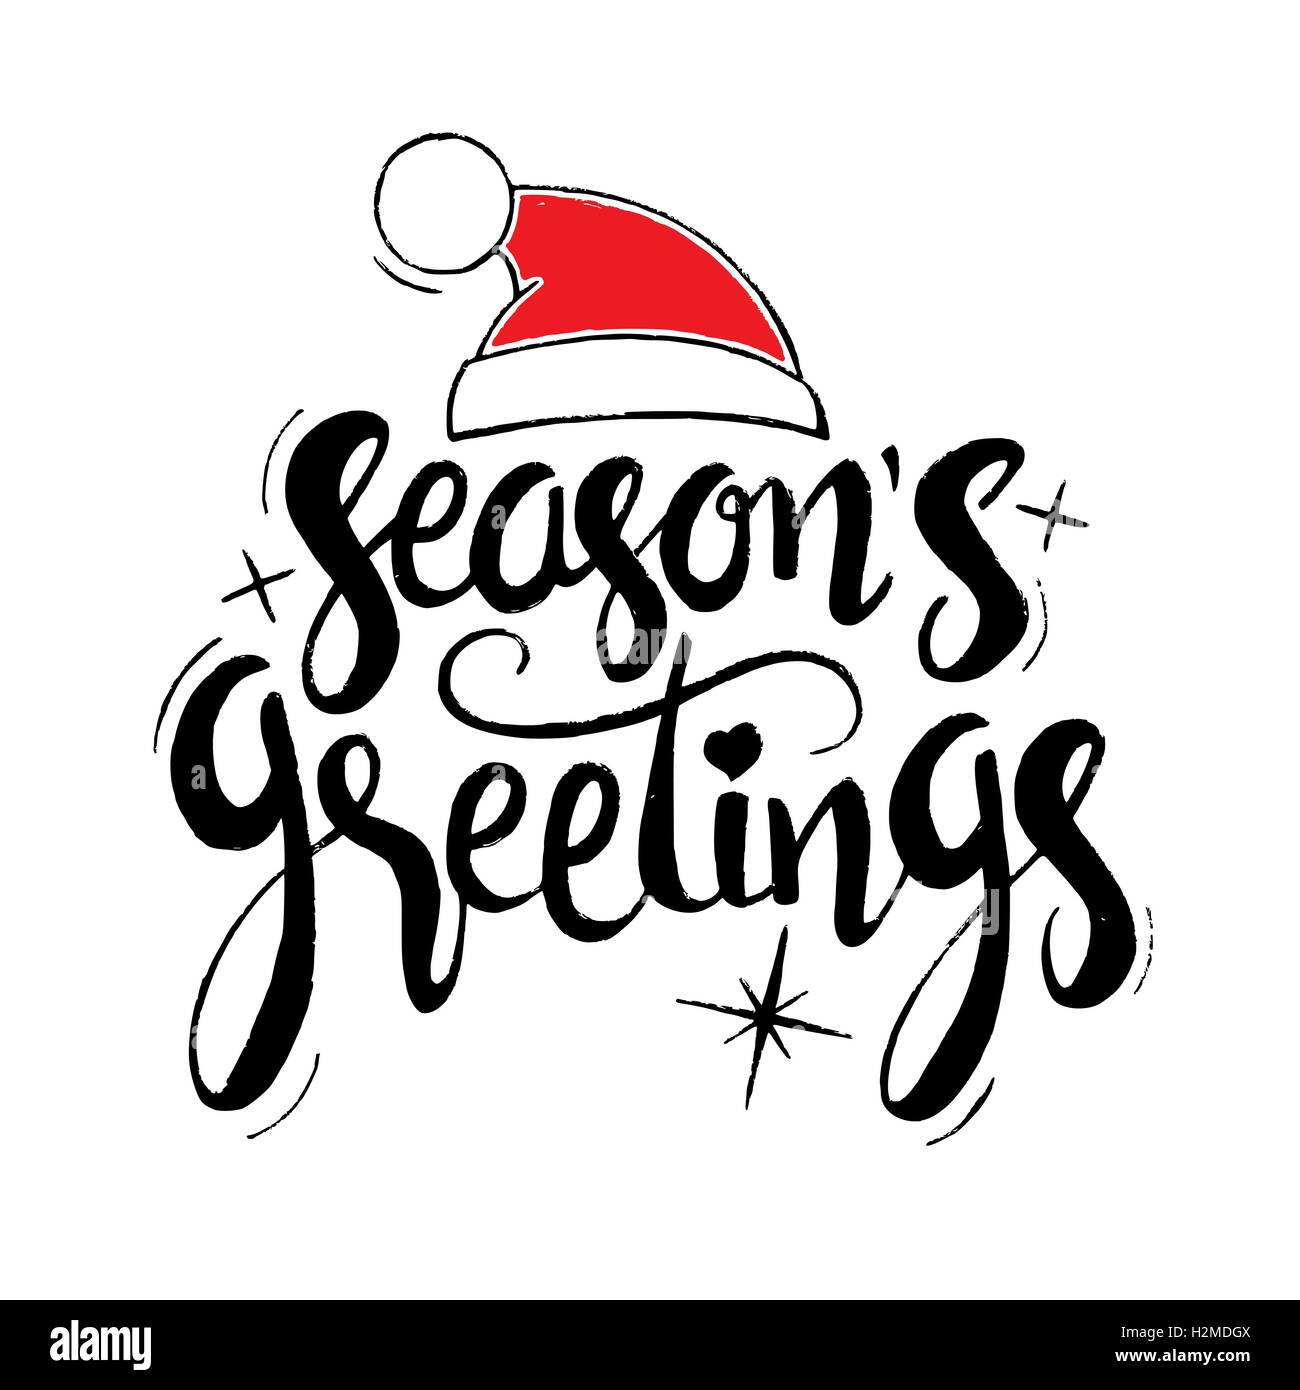 Seasons greetings lettering modern vector hand drawn calligraphy seasons greetings lettering modern vector hand drawn calligraphy with santa claus red hat and stars kristyandbryce Images